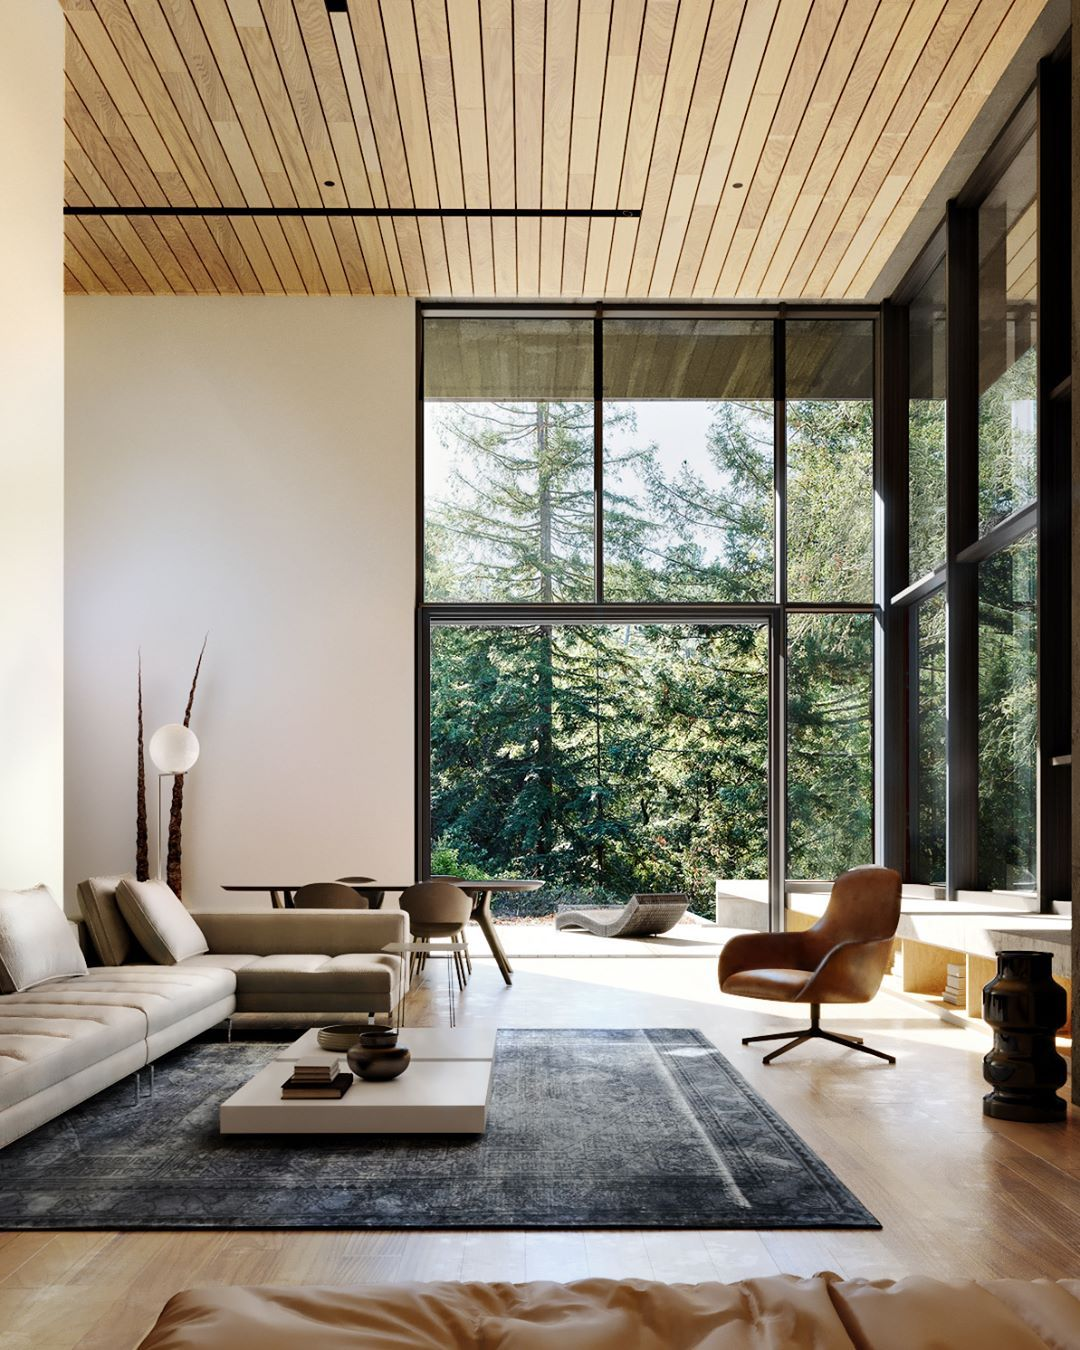 Amazing Living Room With Large Wide Windows That Allow The Roo